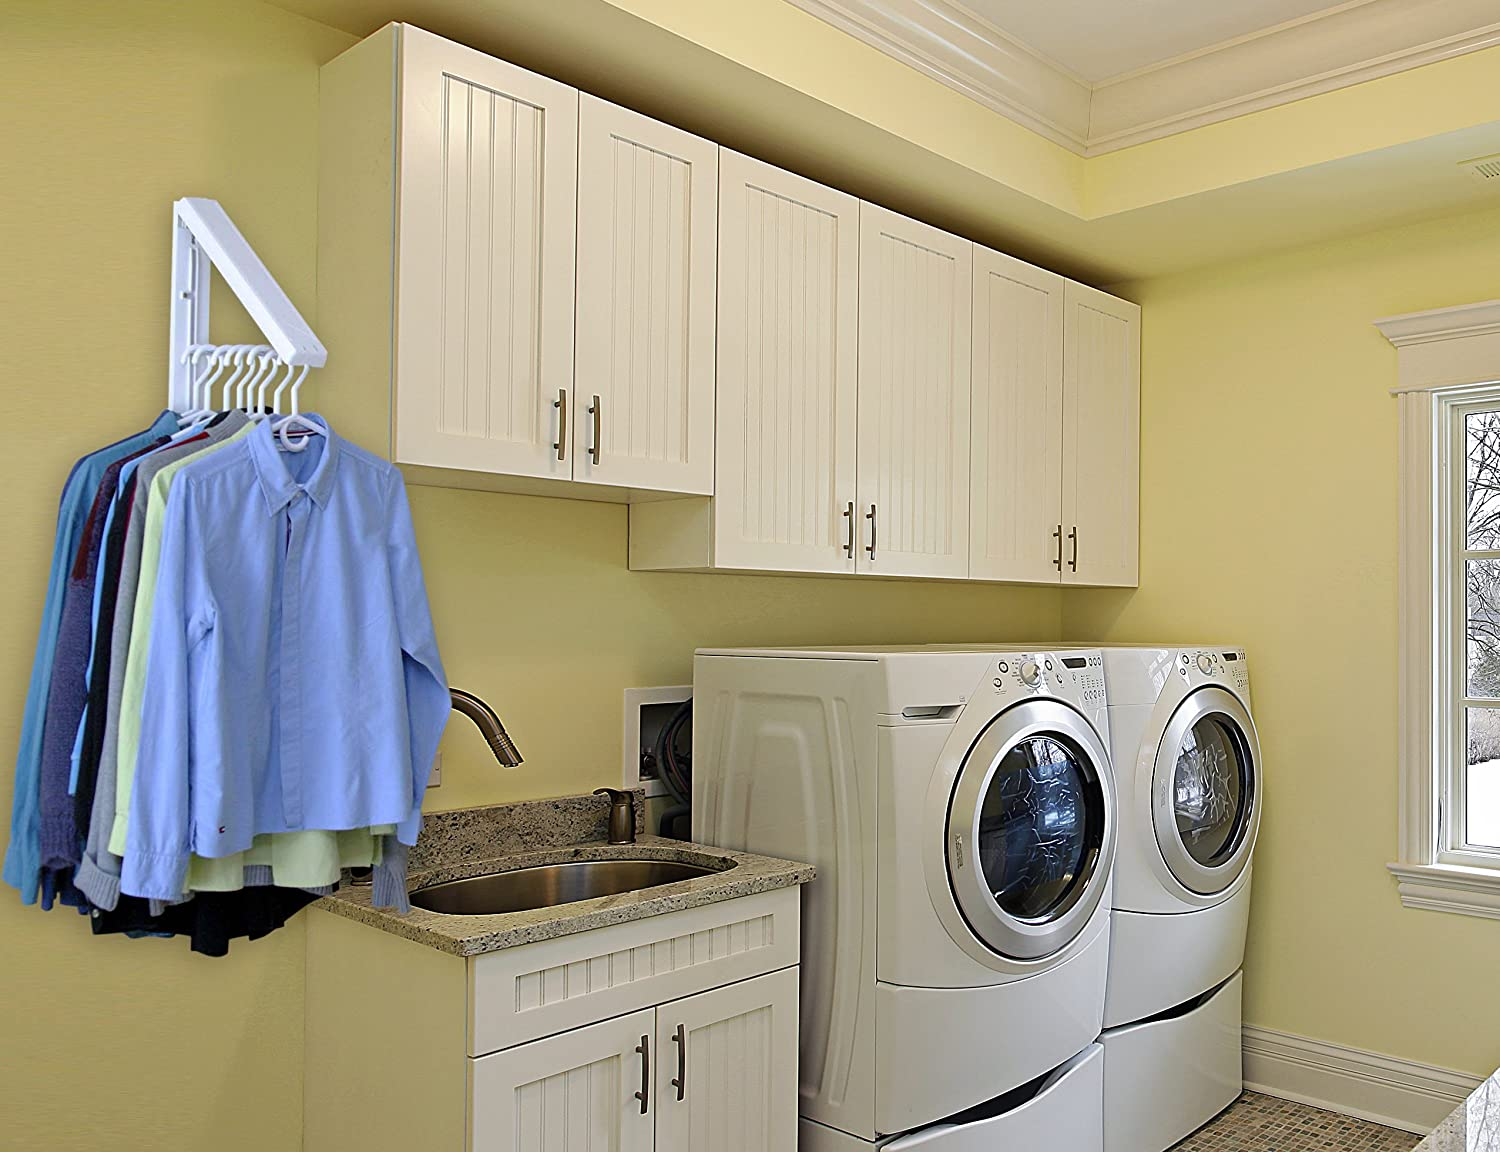 Amazon.com: The Original InstaHANGER Model AH12/M White  Folding  Collapsible Wall Mounted Clothes Storage/Drying Rack: Home & Kitchen